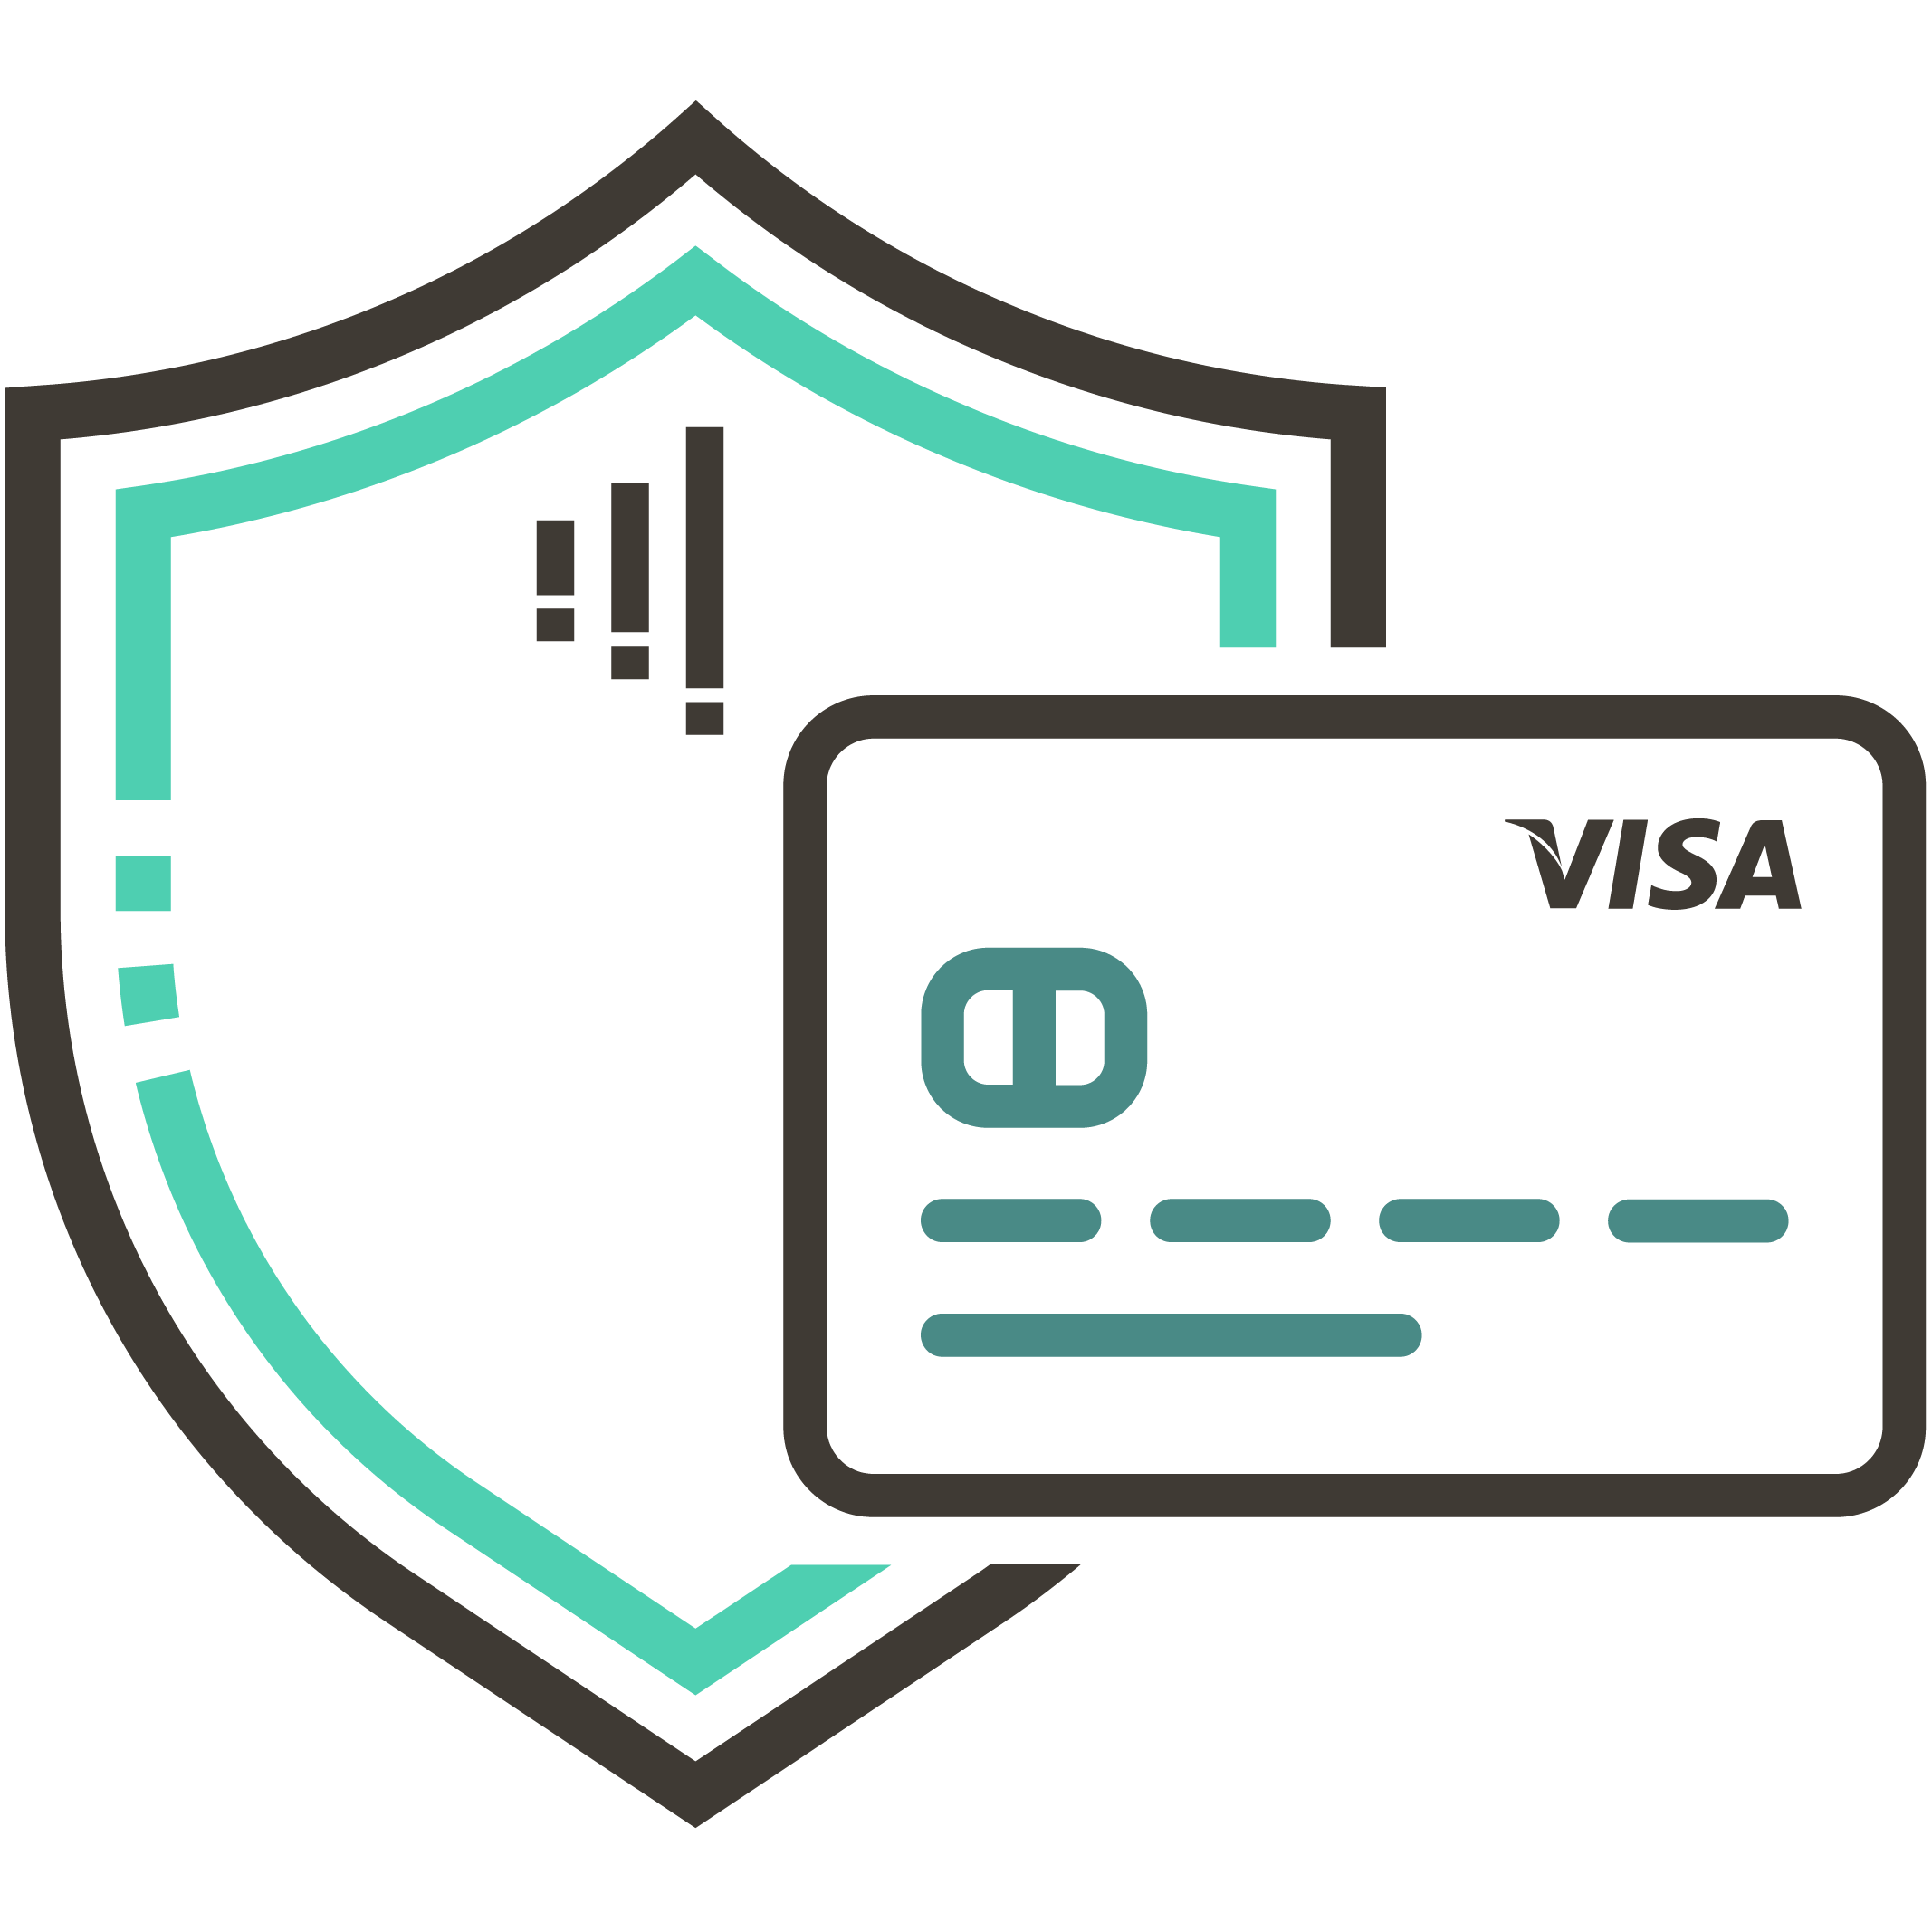 Secured credit cards powered by VISA